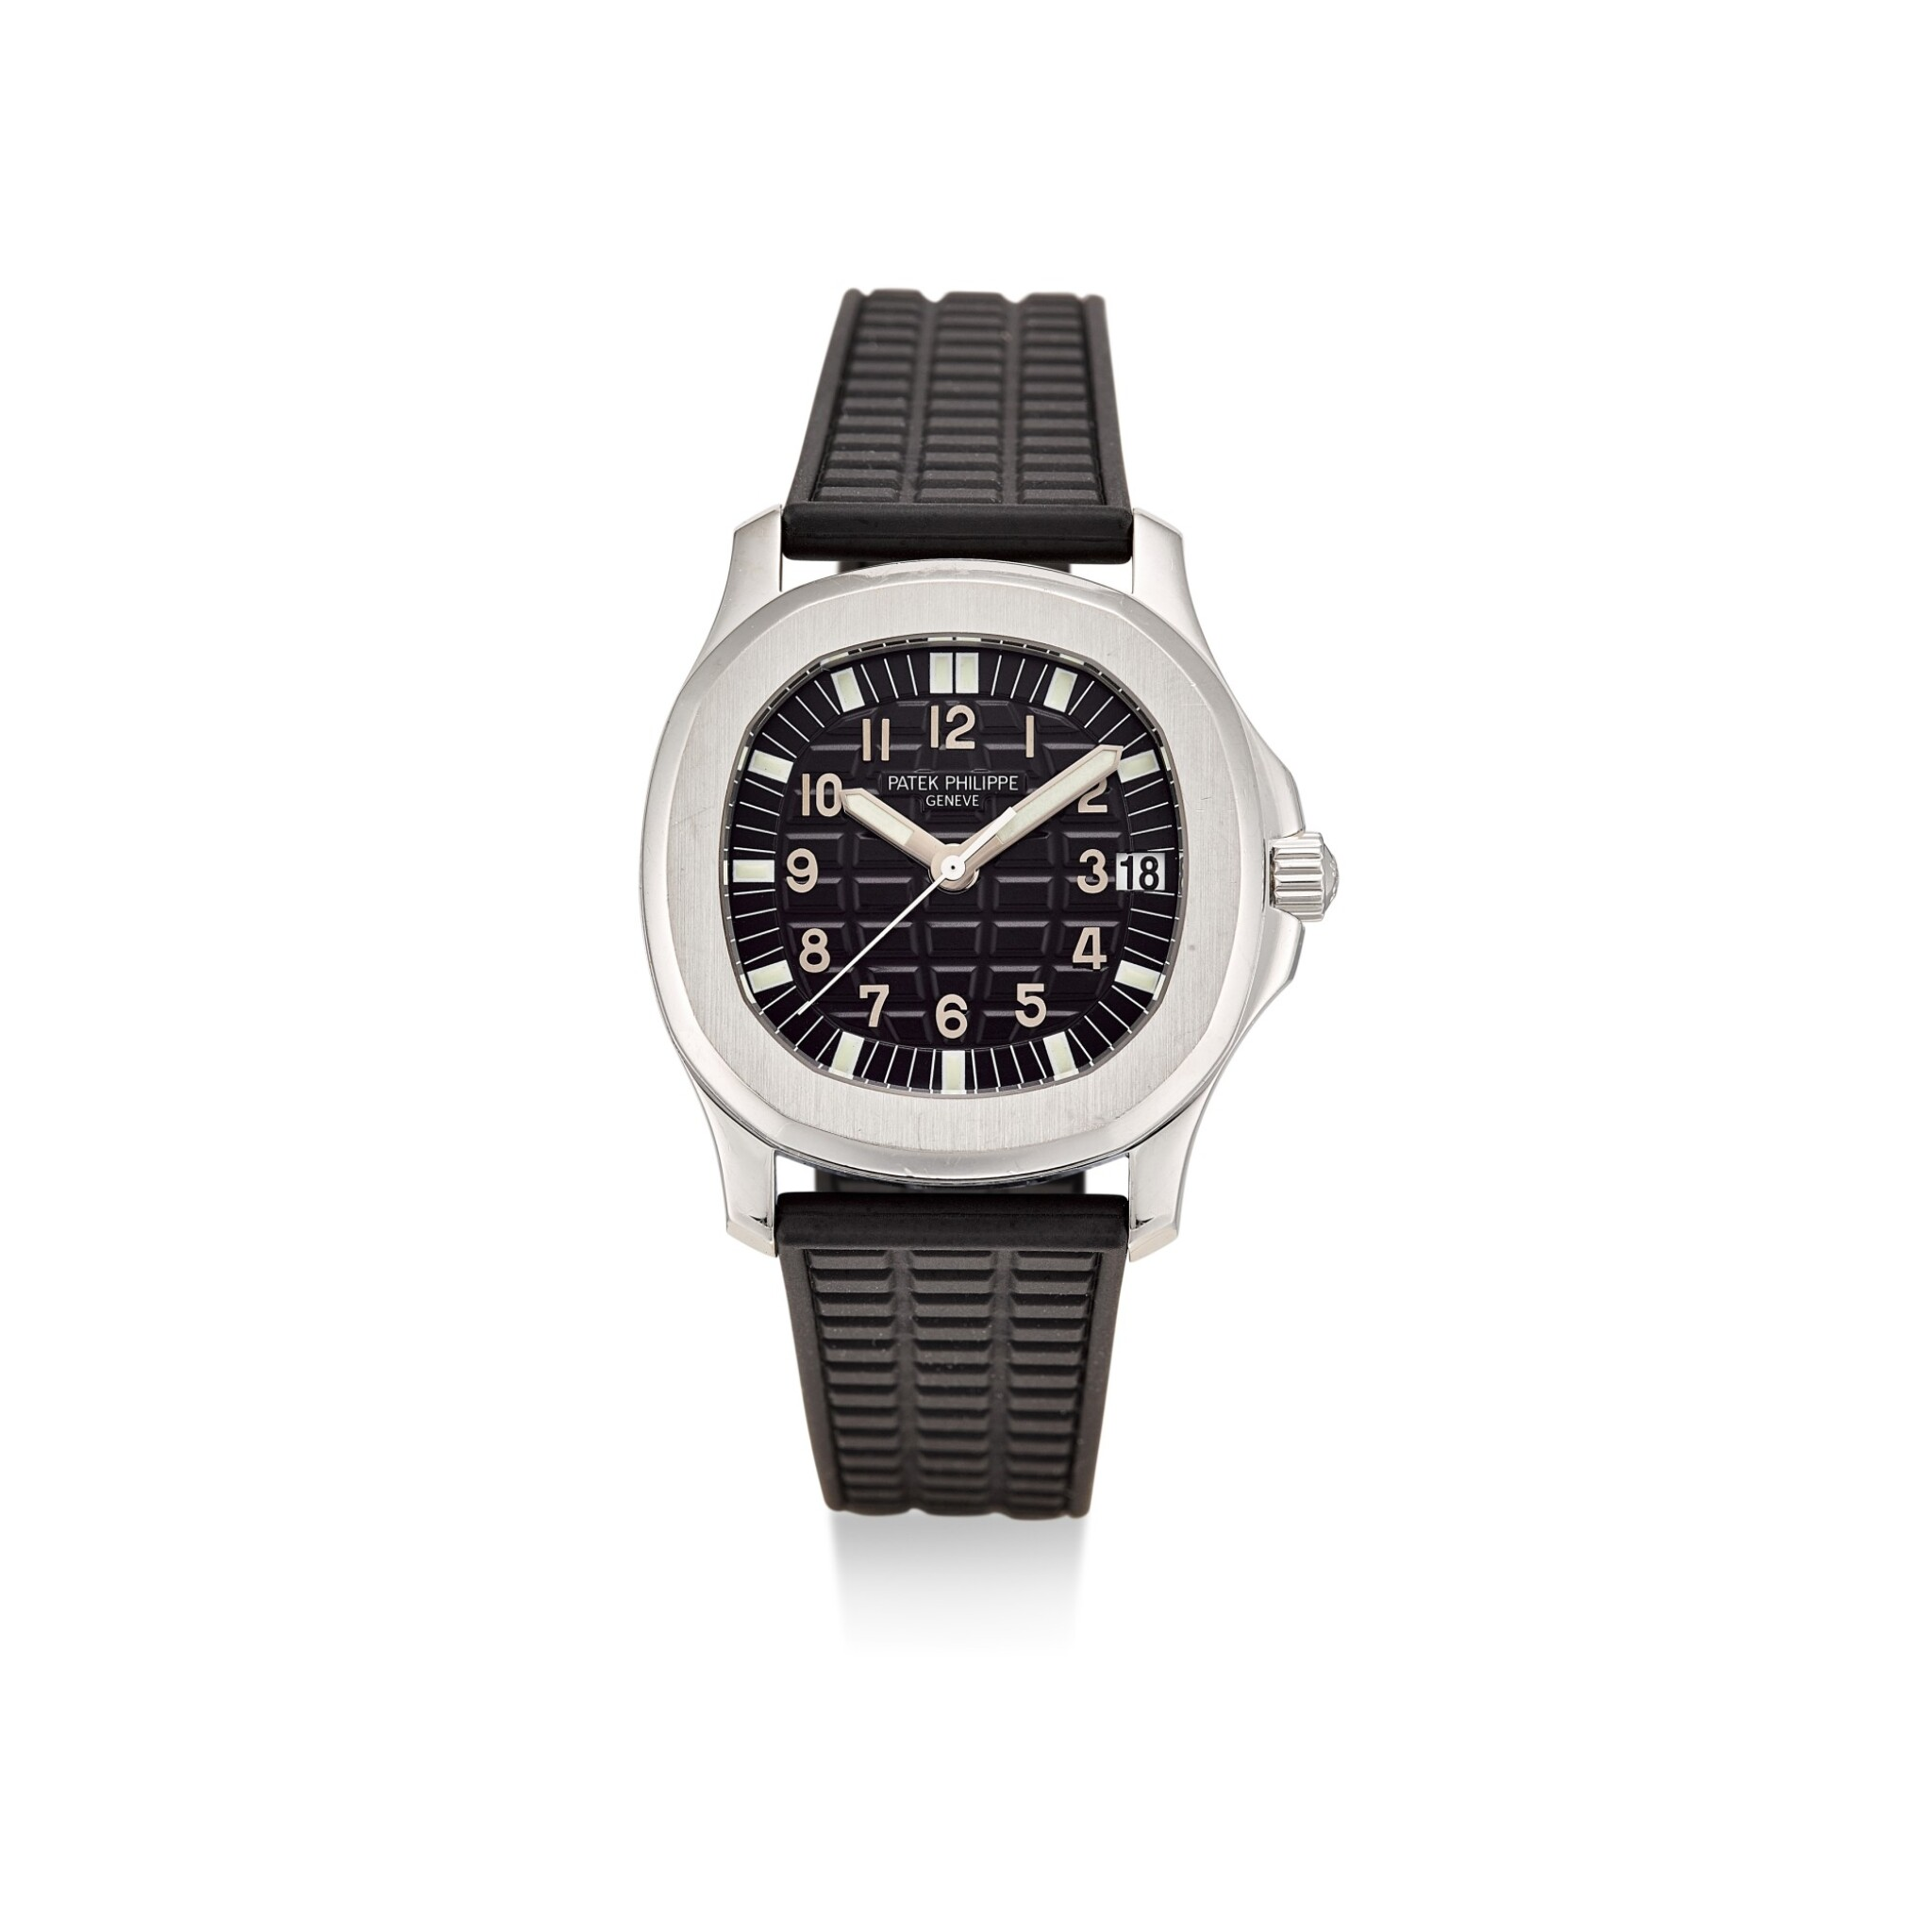 PATEK PHILIPPE | AQUANAUT, REFERENCE 5066 A STAINLESS STEEL WRISTWATCH WITH DATE, CIRCA 2000